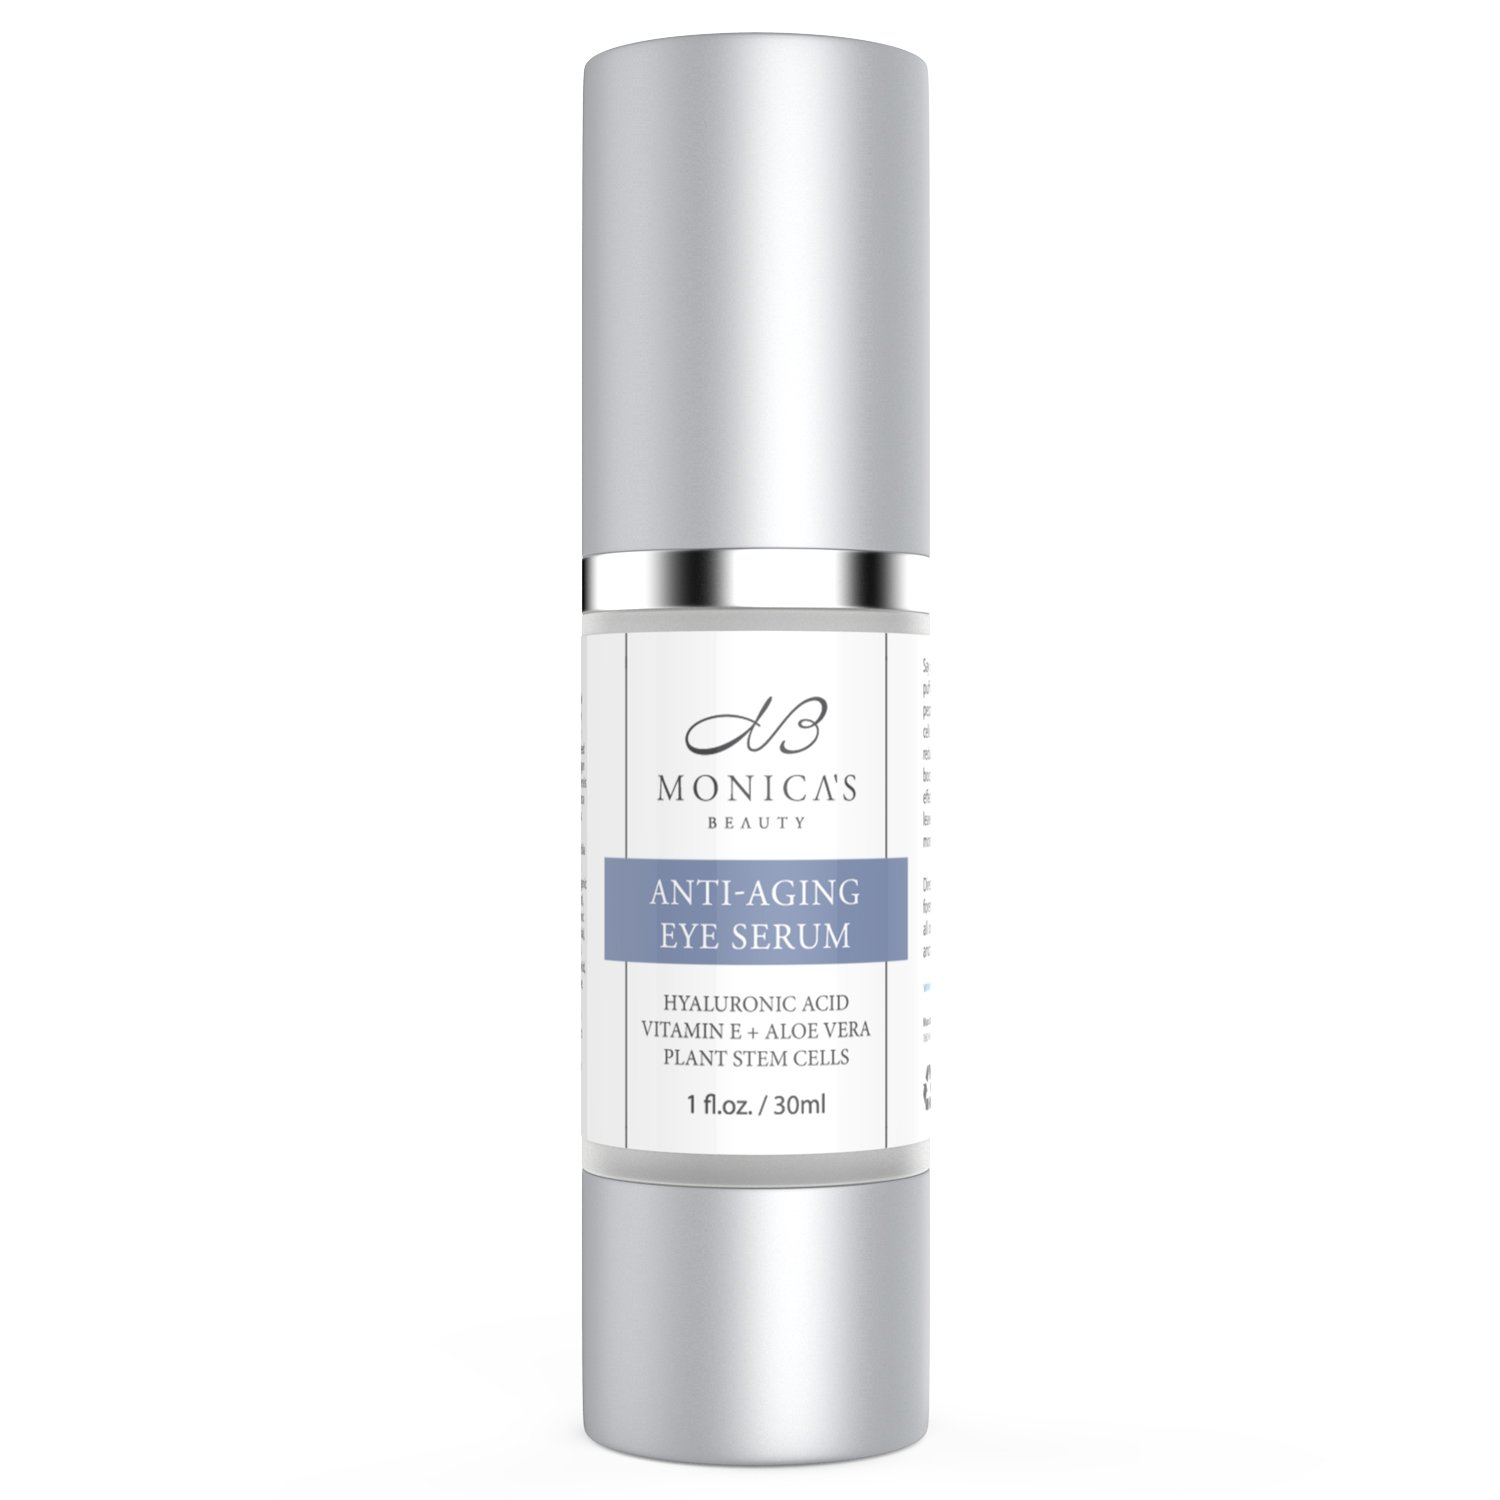 Monica's Beauty Anti-Aging Eye Serum - Eye Wrinkle Cream With Hyaluronic Acid, Vitamin E + Aloe Vera and Plant Stem Cells - Perfect for Getting Rid of Fine Lines, Puffiness, Dark Circles & Crows' Feet